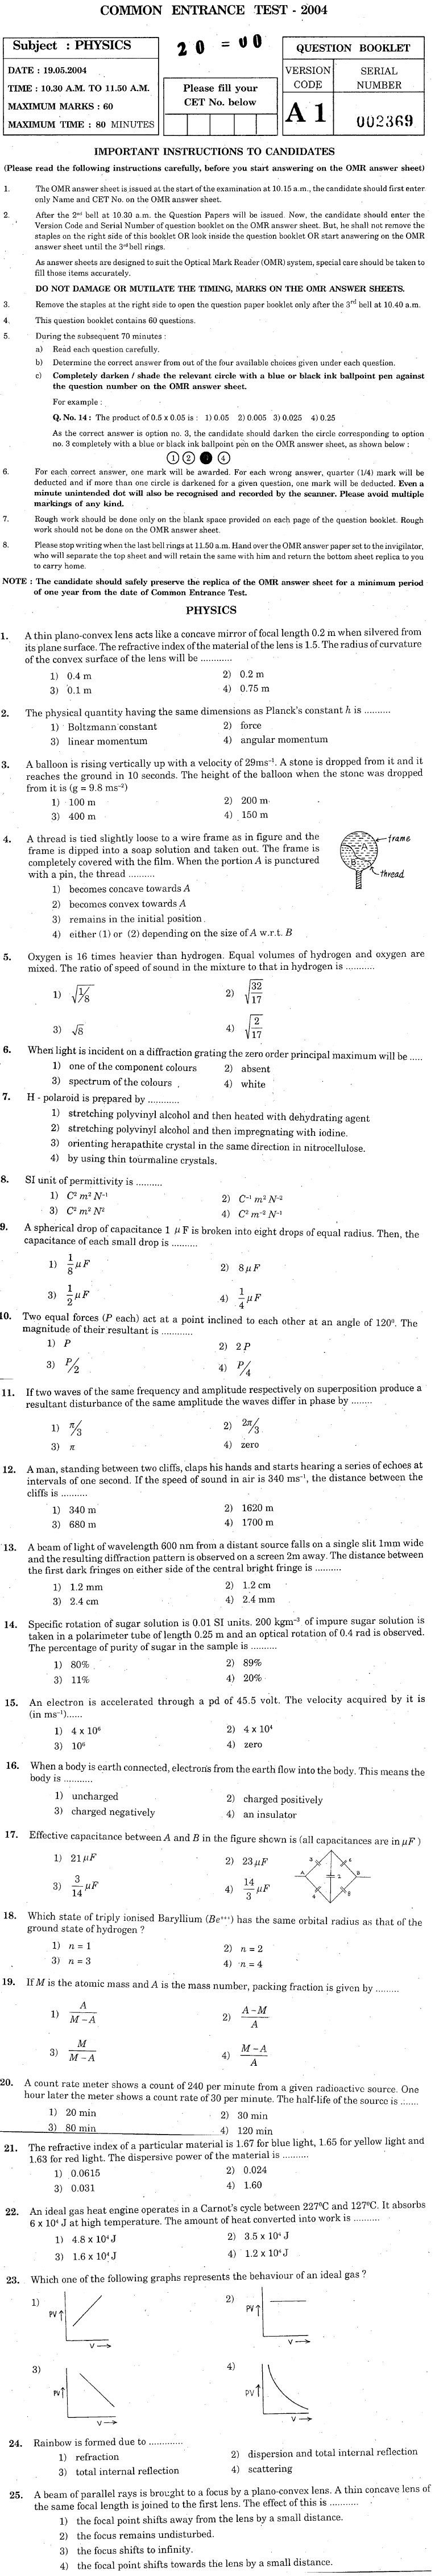 KCET 2004 Question Paper - Physics